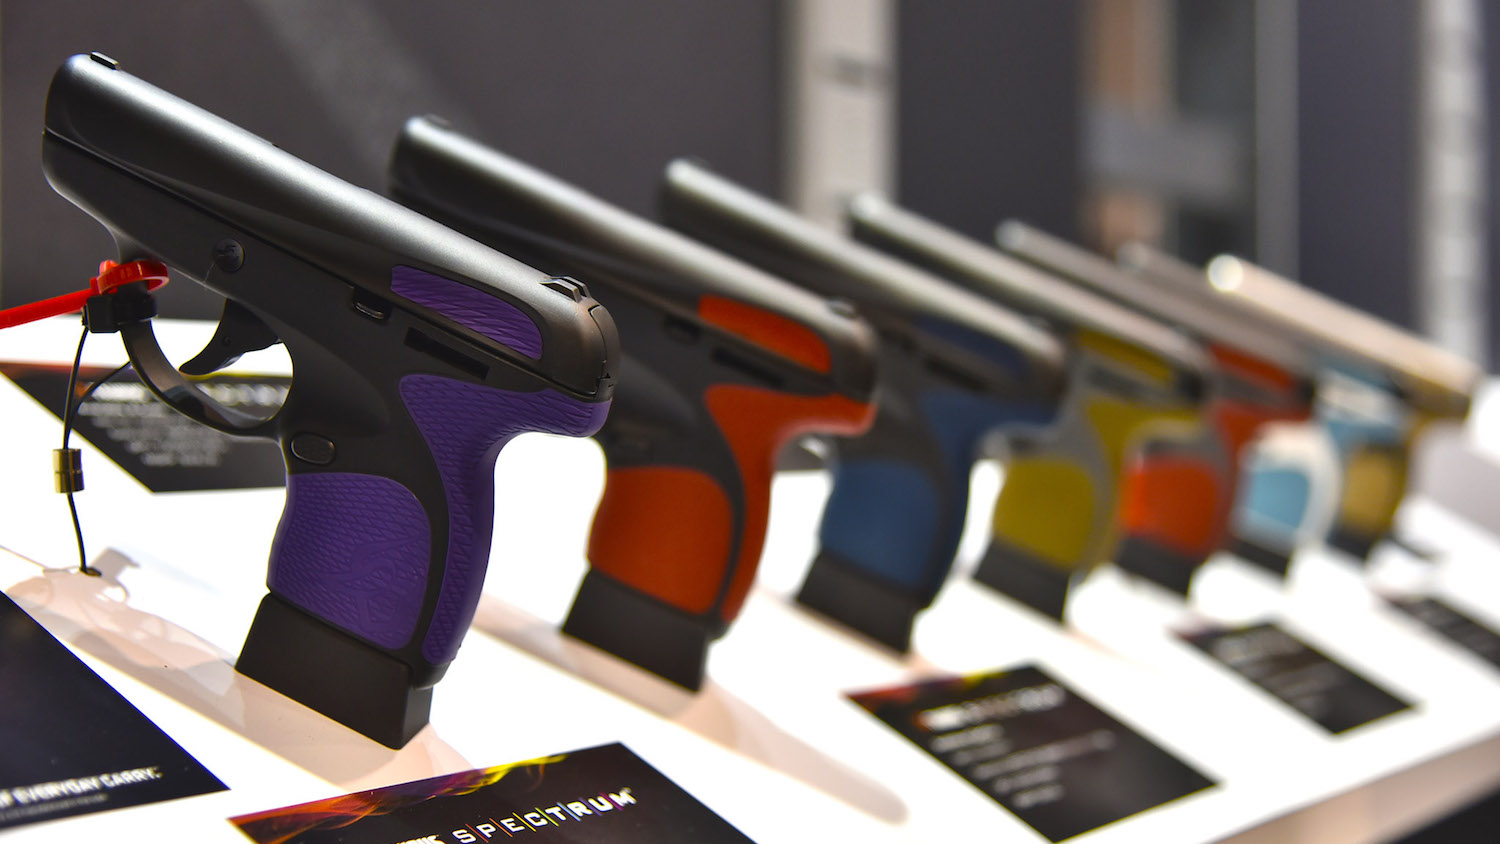 Taurus' New Spectrum Pistol Is Much More Than Shiny New Colors